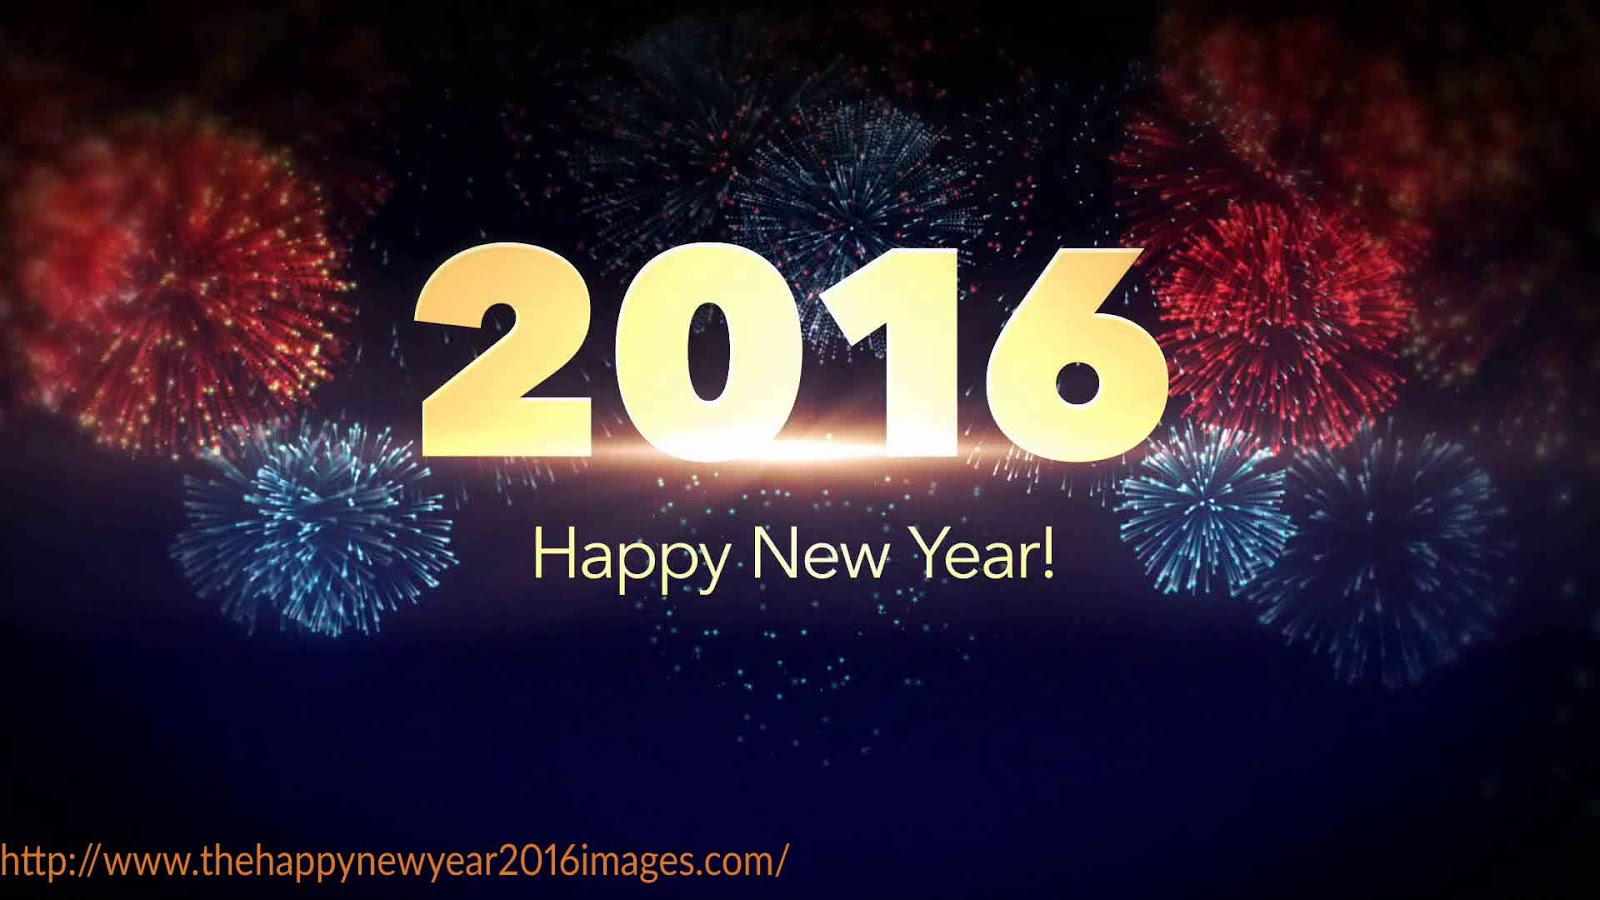 Happy New Year 2016 Images   New Year 2016 Wishes   New Year 2016 SMS ...